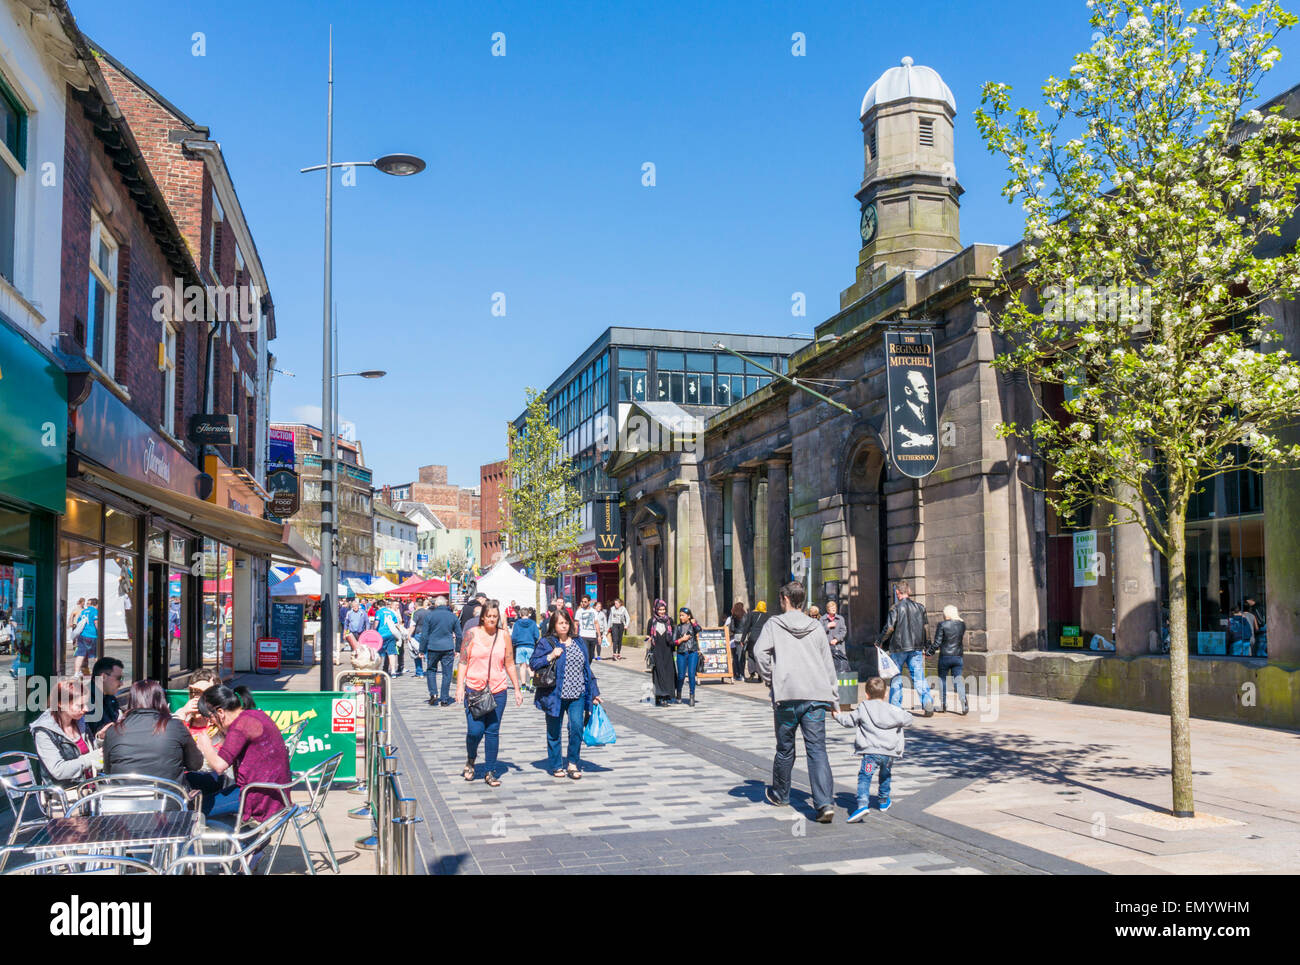 City Centre Stoke on Trent Staffordshire England GB UK EU Europe & City Centre Stoke on Trent Staffordshire England GB UK EU Europe ...